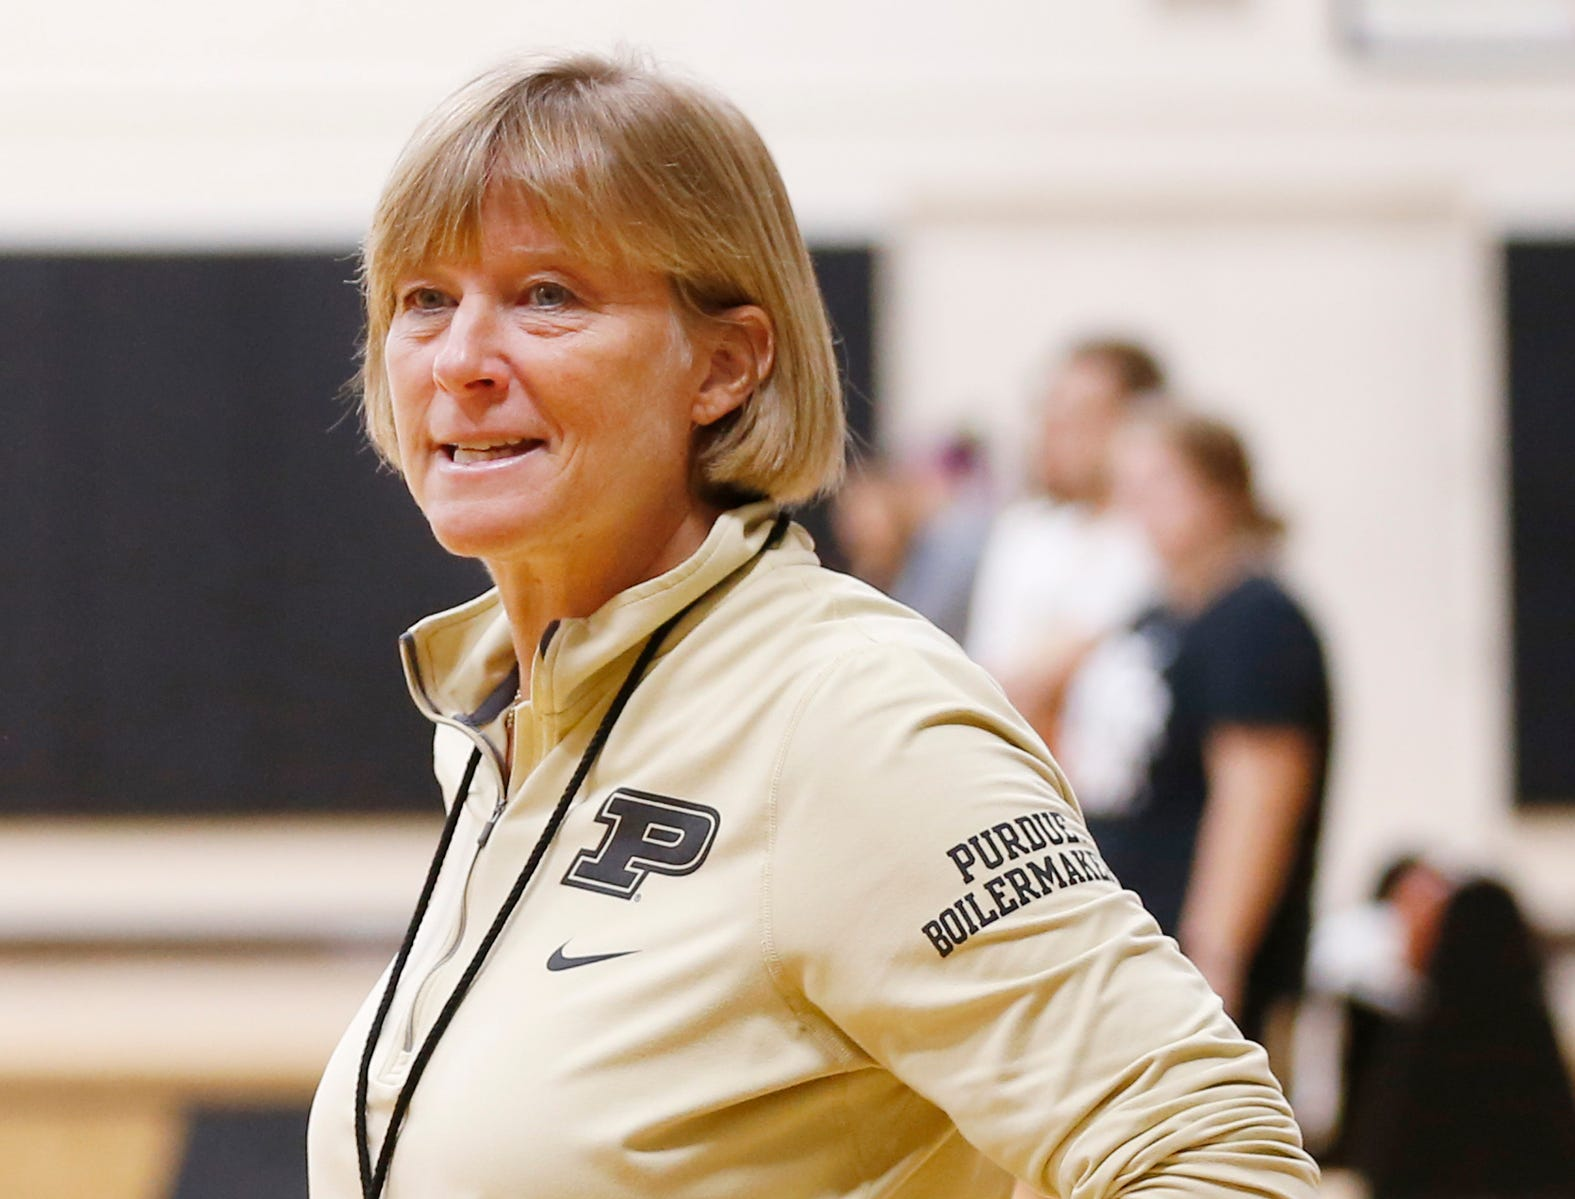 Head coach Sharon Versyp watches players run drills during Purdue women's basketball Wednesday, September 26, 2018, at Cardinal Court in Mackey Arena.